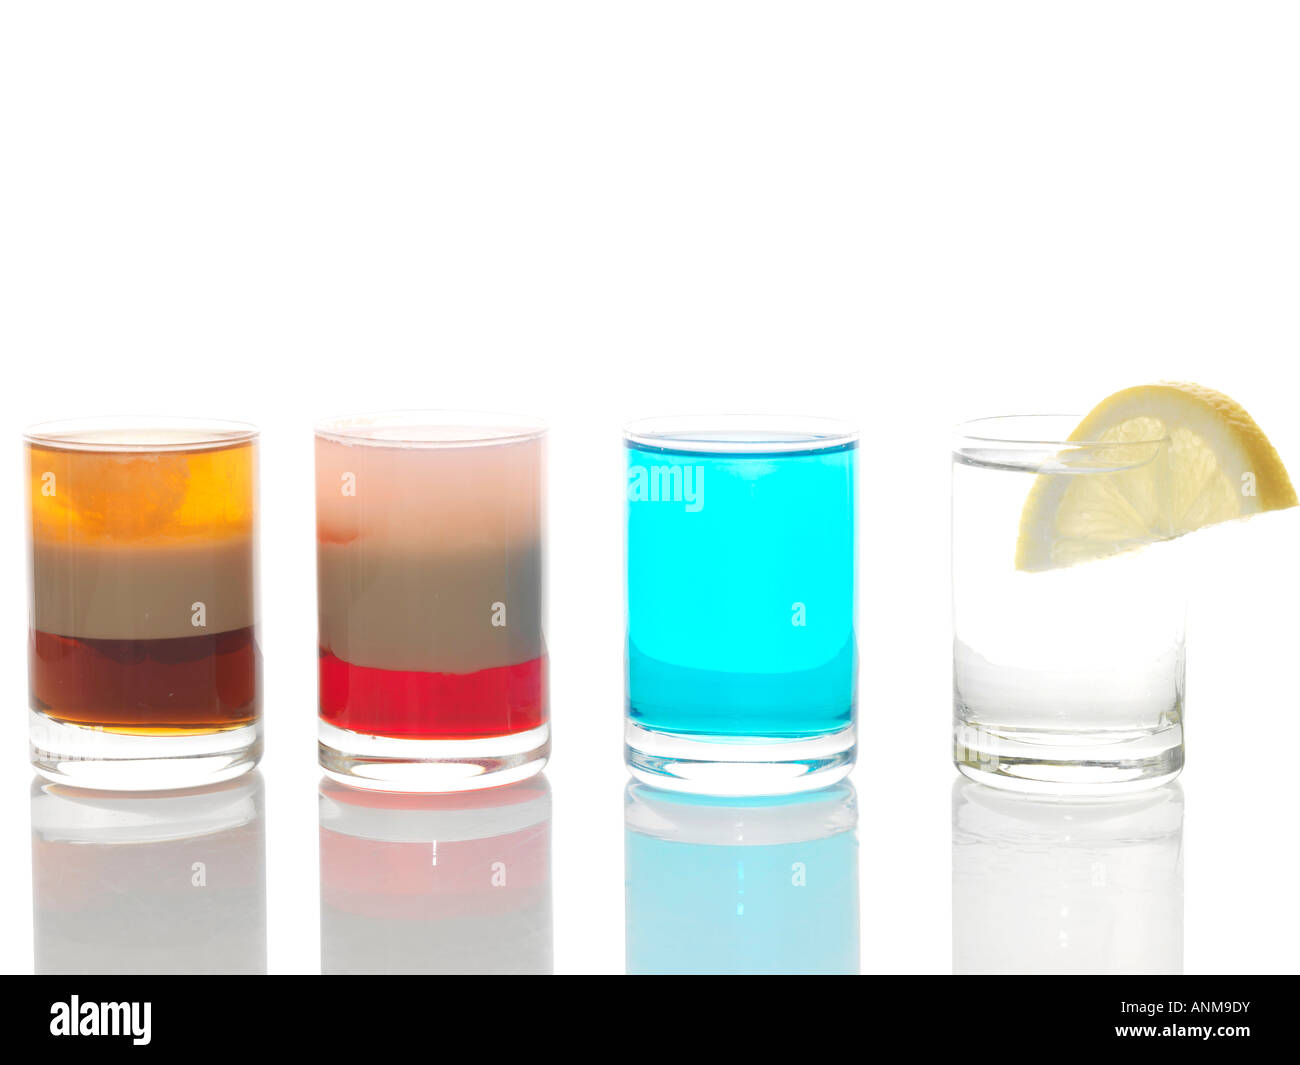 Slippery Nipple Shot Shooter High Resolution Stock Photography And Images Alamy